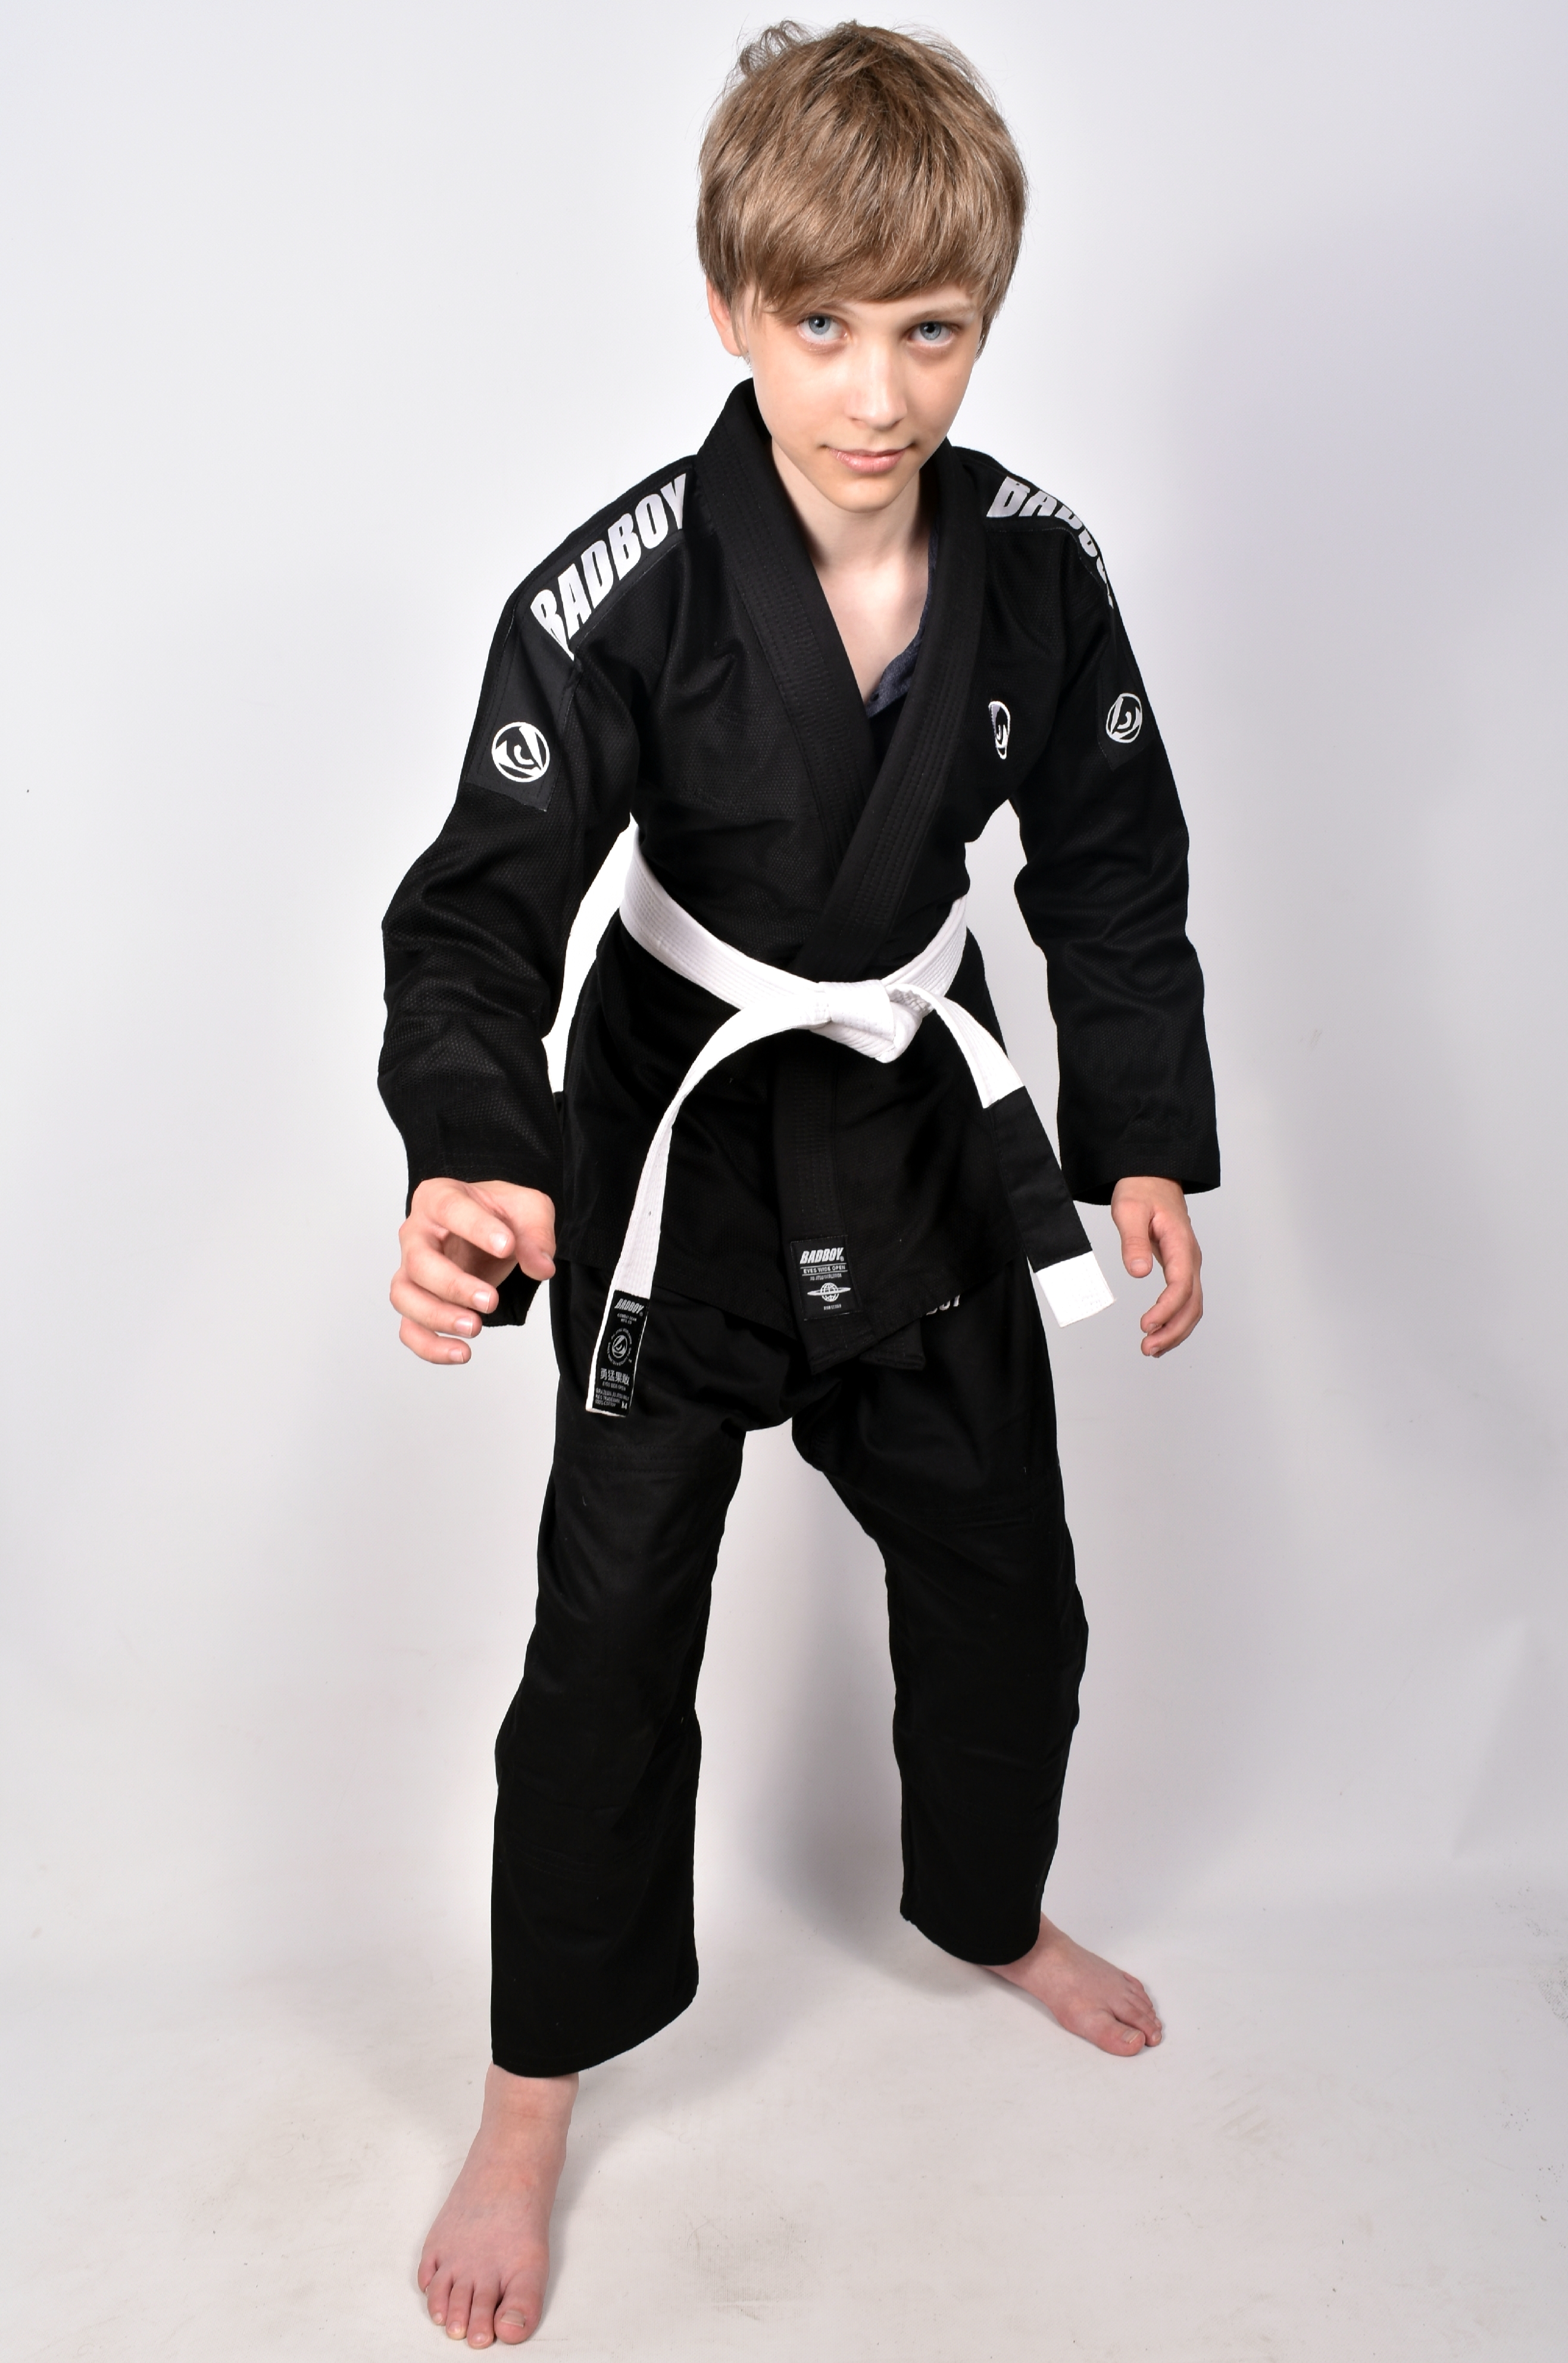 Кимоно Детское Bad Boy Focus BJJ Gi с поясом Black фото 3